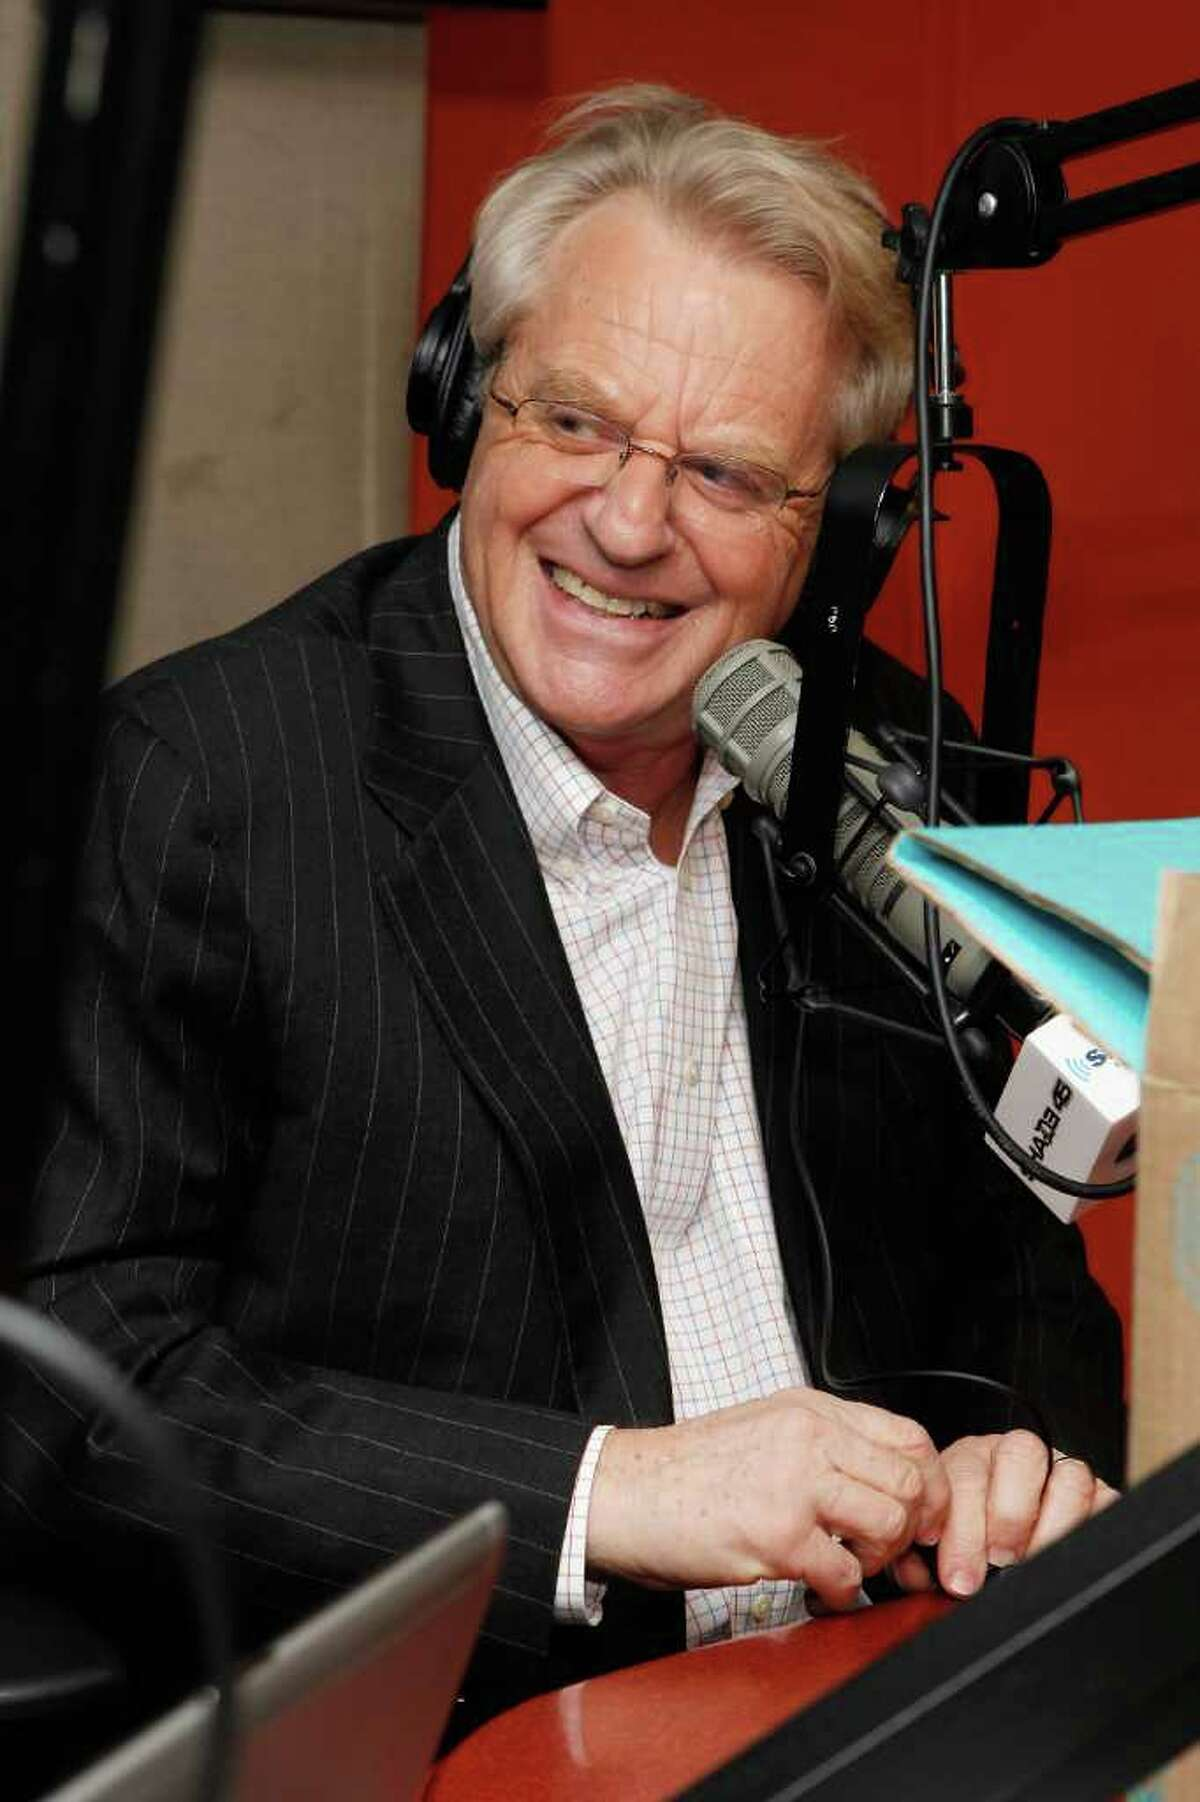 TV personality Jerry Springer, pictured visiting SiriusXM Studio in New York City January 19, was spotted having a birthday cigar at Connecticut Cigar Lounge in Stamford Tuesday. (Photo by Cindy Ord/Getty Images)